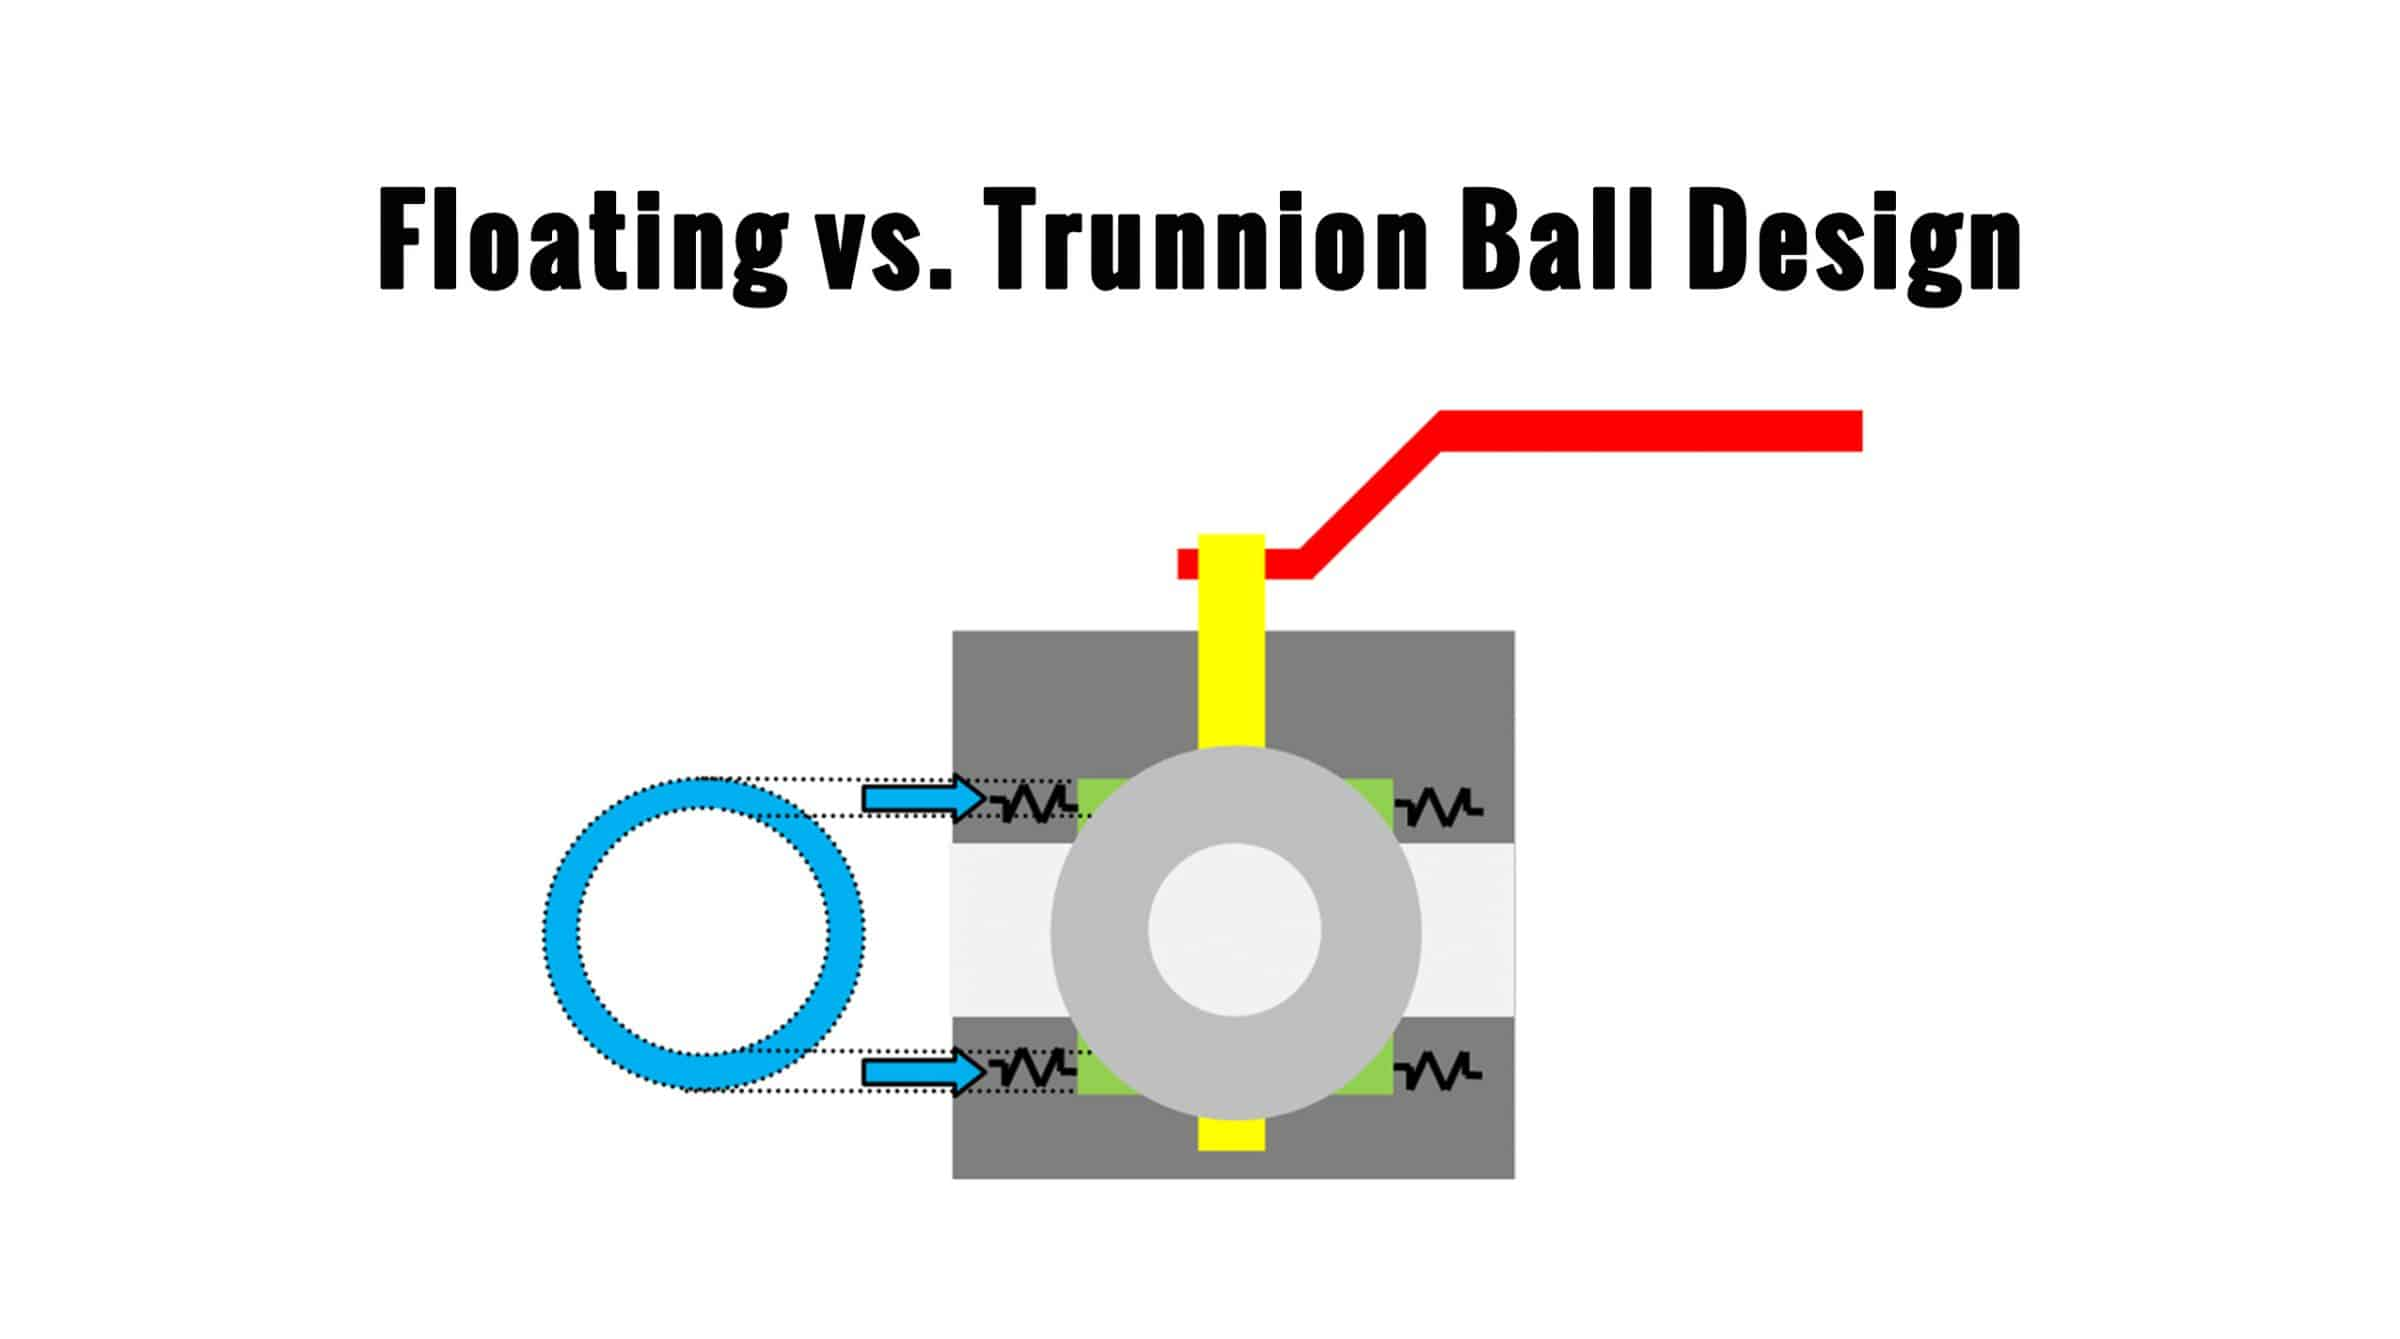 DBB - The difference between floating ball valves and trunnion ball valves.